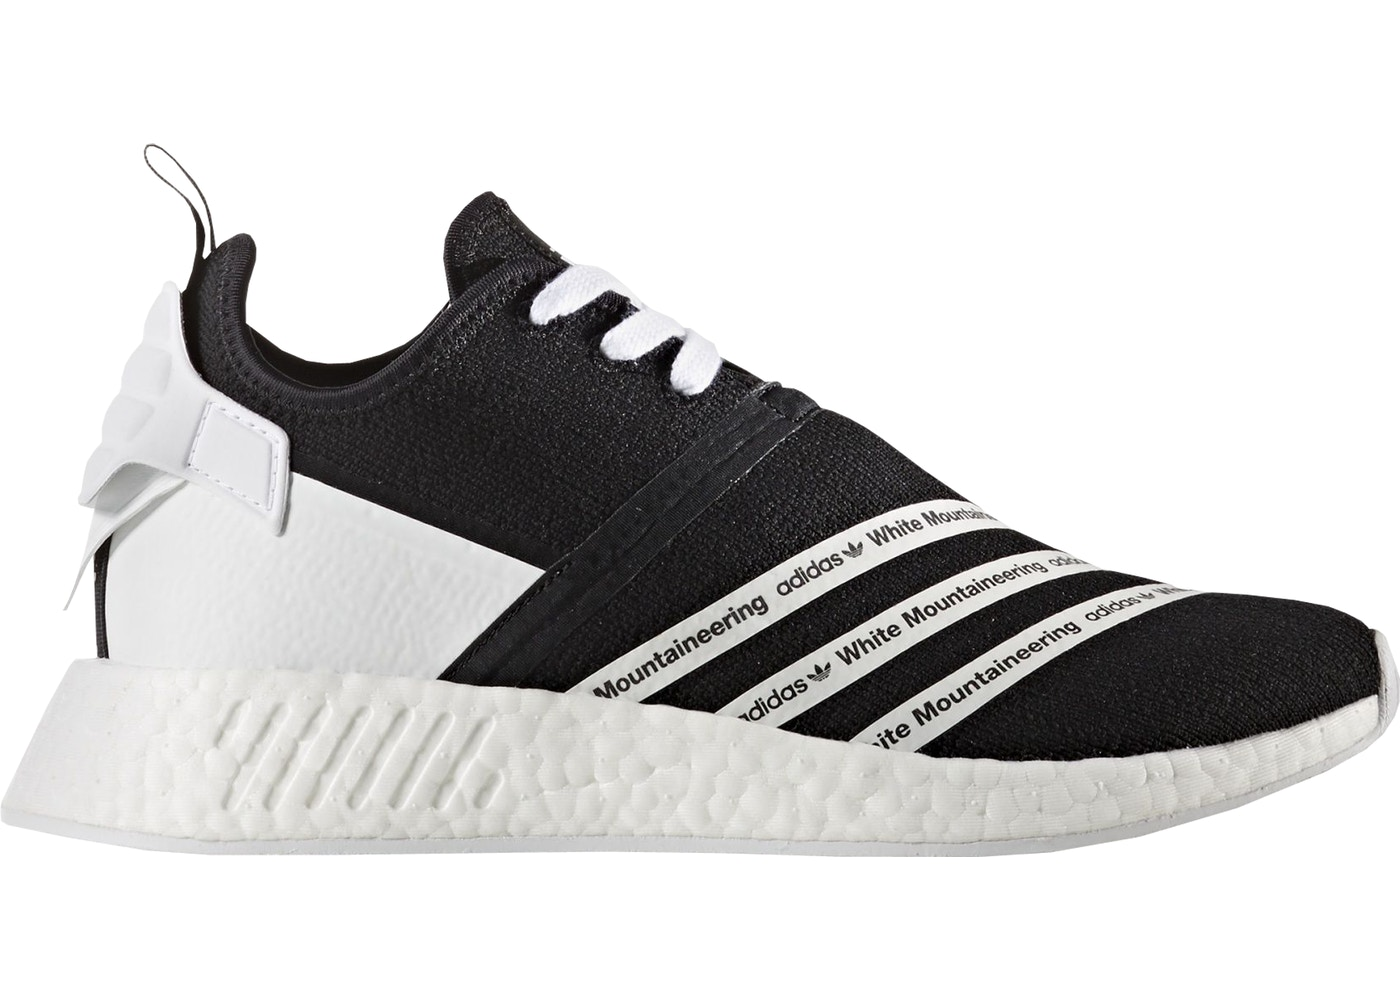 49cd78669fc4c adidas NMD R2 White Mountaineering Black White - CG3648